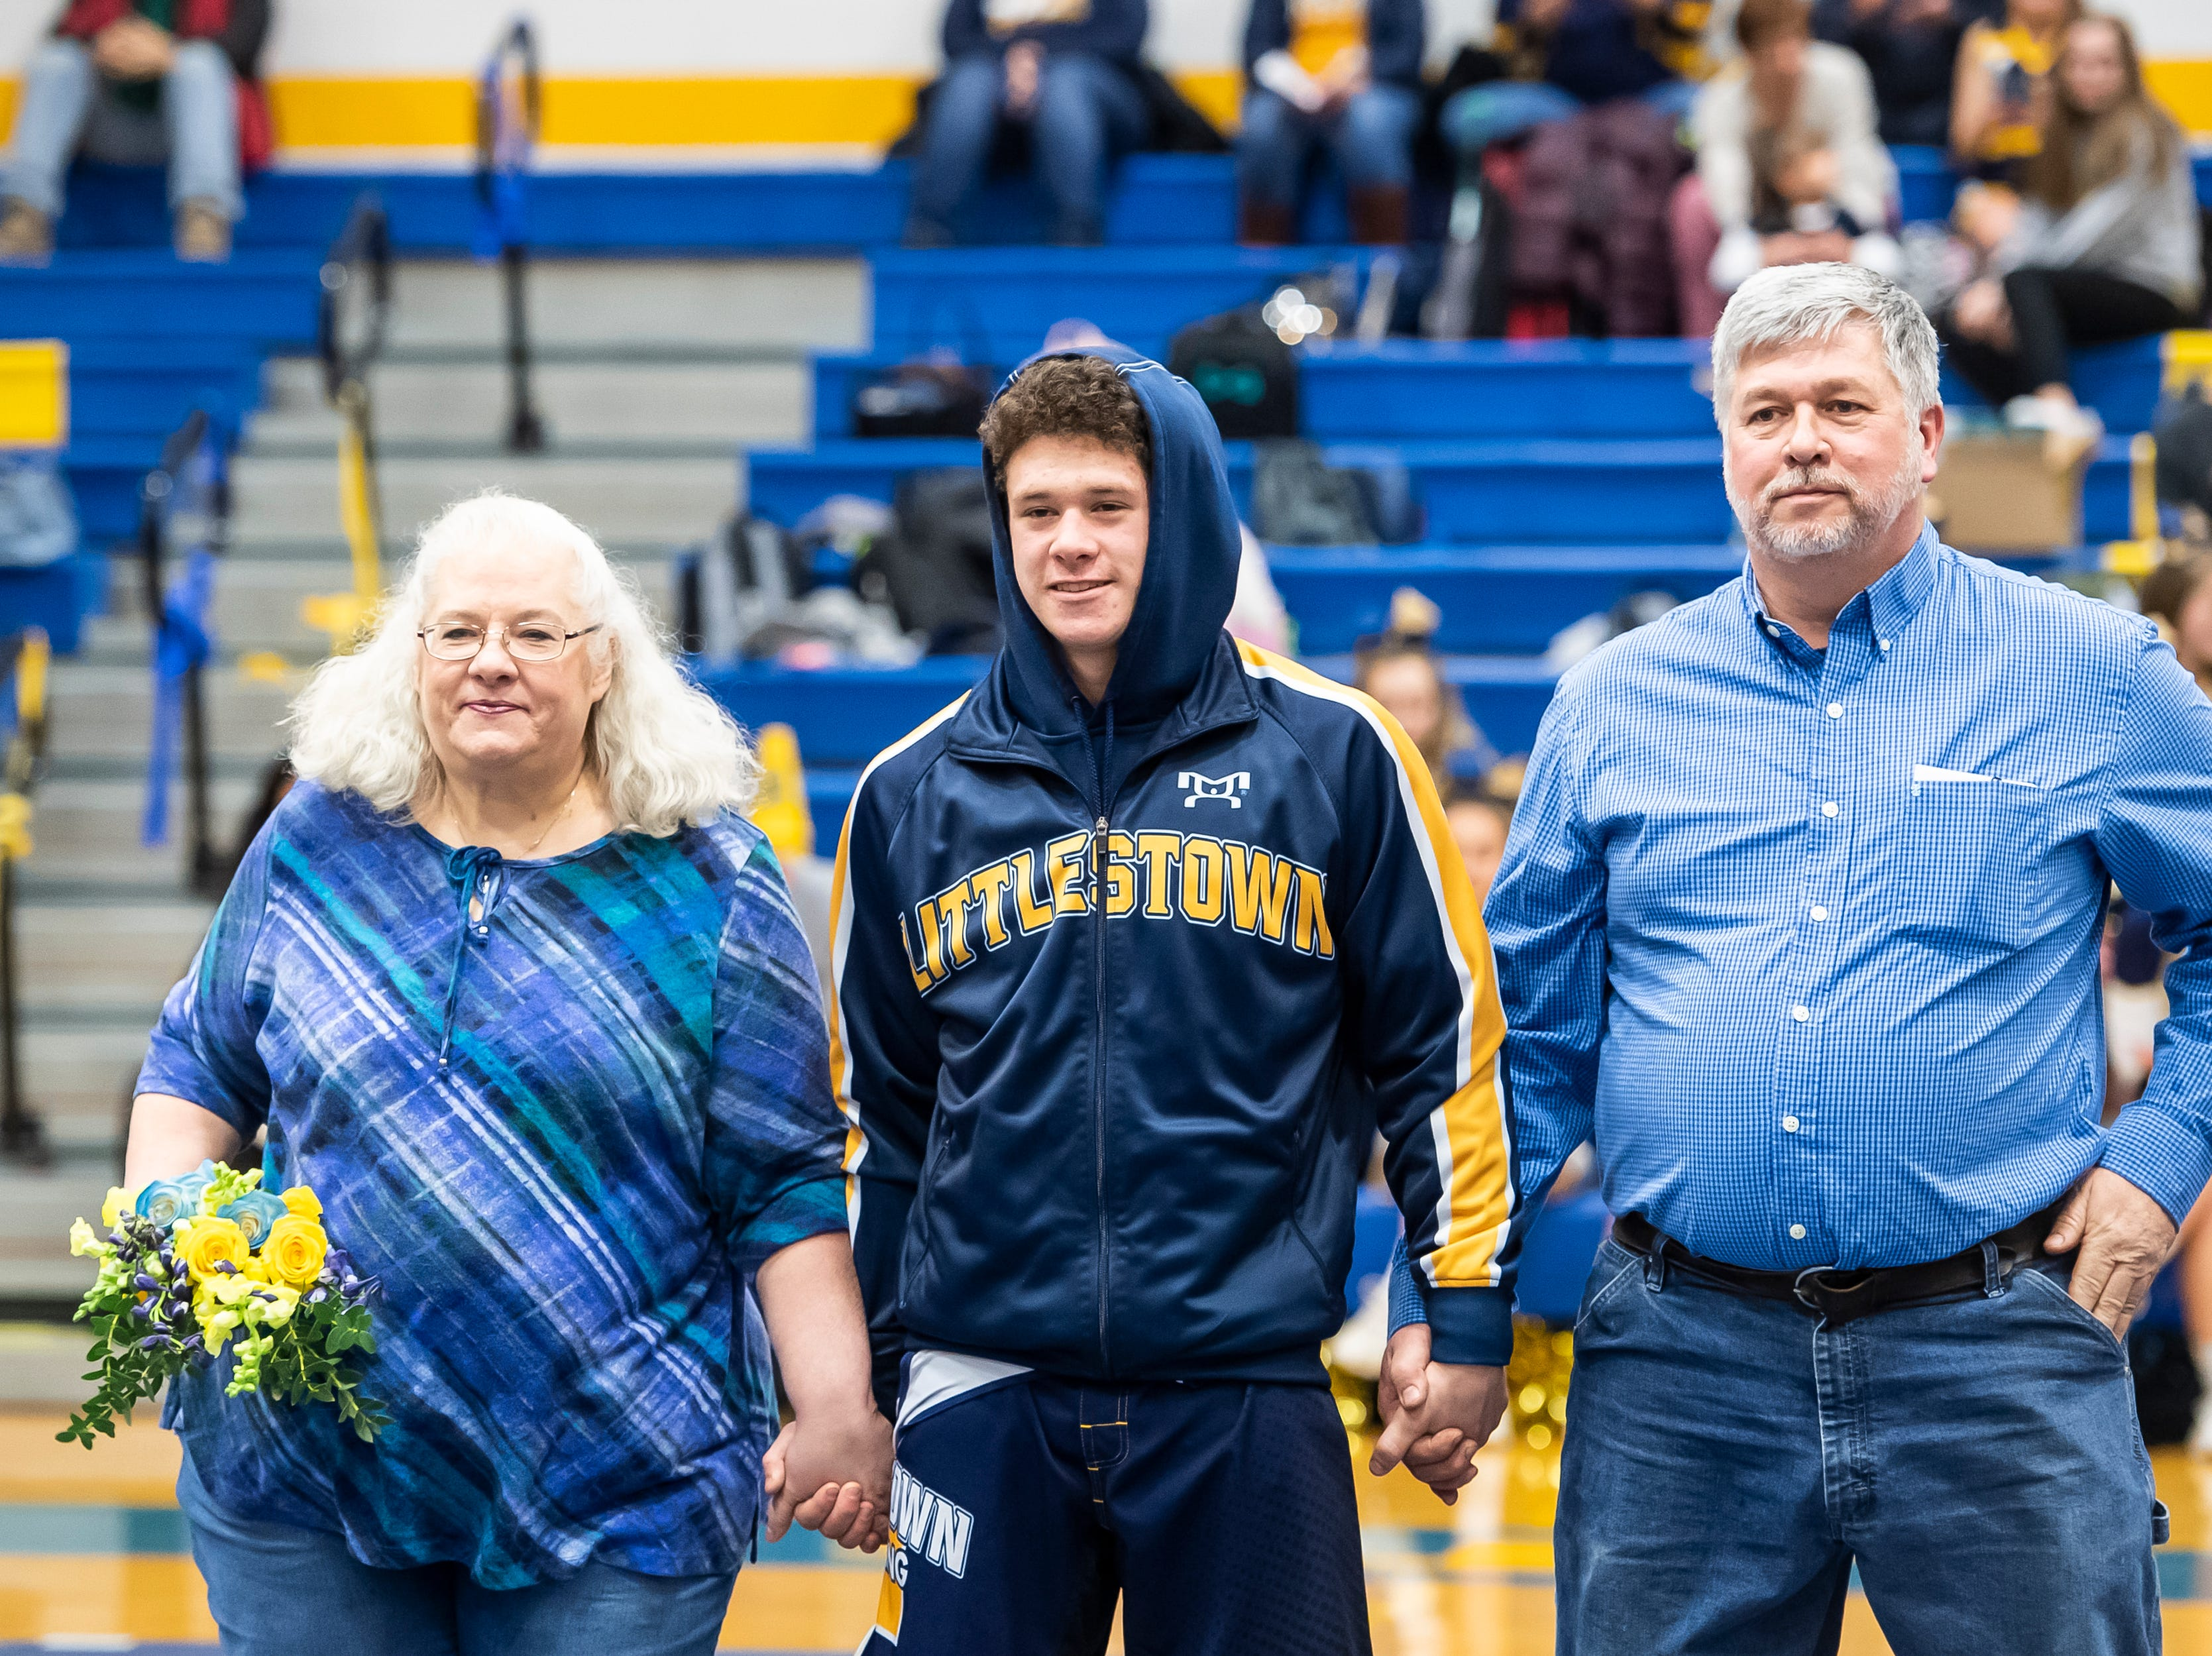 Littlestown's Jason Penton is honored on senior night prior to a match against Bermudian Springs in Littlestown Thursday, January 24, 2019. The Bolts fell 62-12.